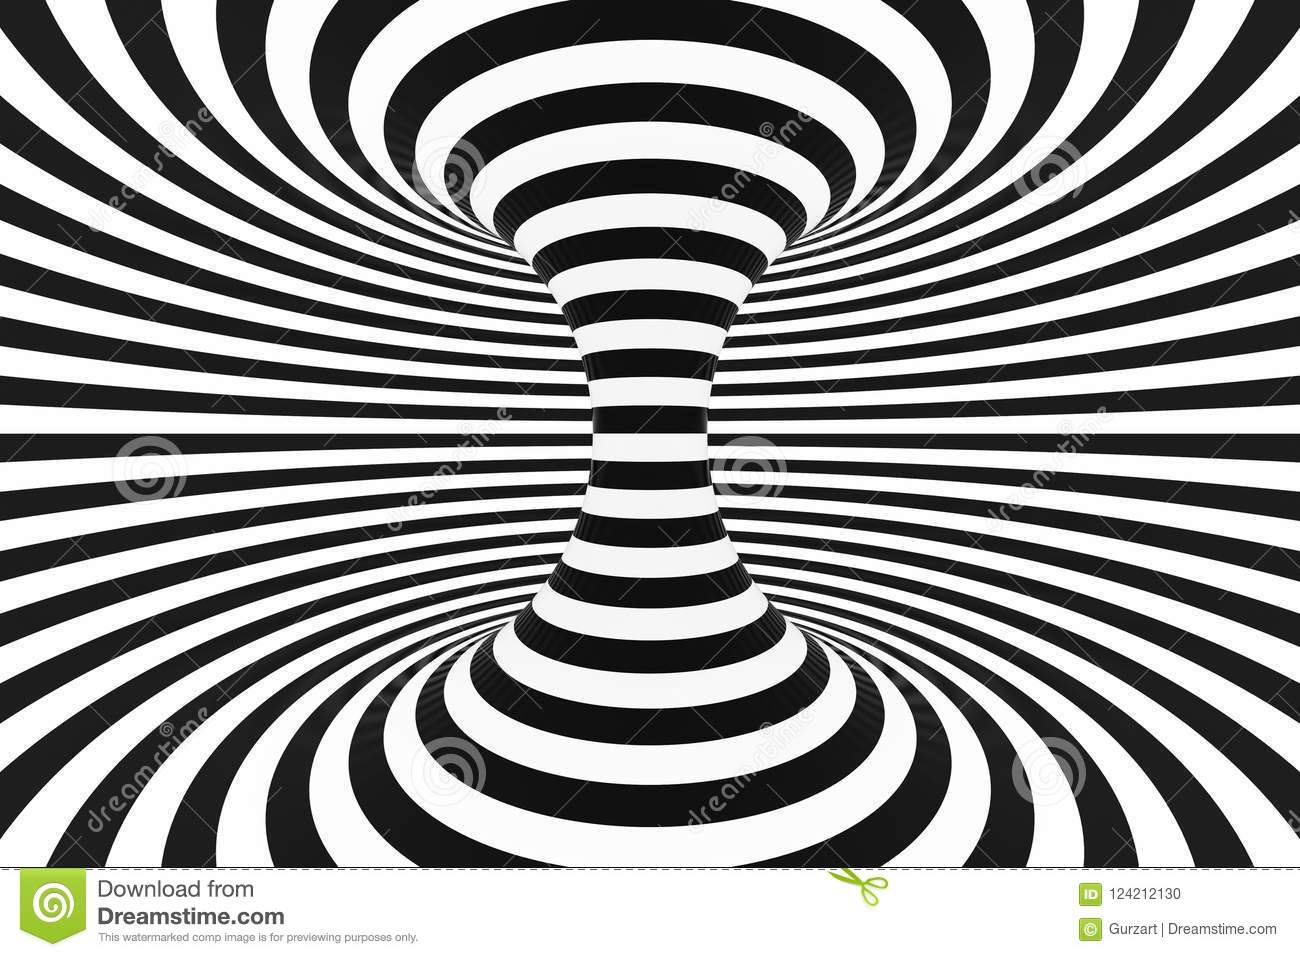 Black and white spiral tunnel striped twisted hypnotic optical illusion abstract background 3d render